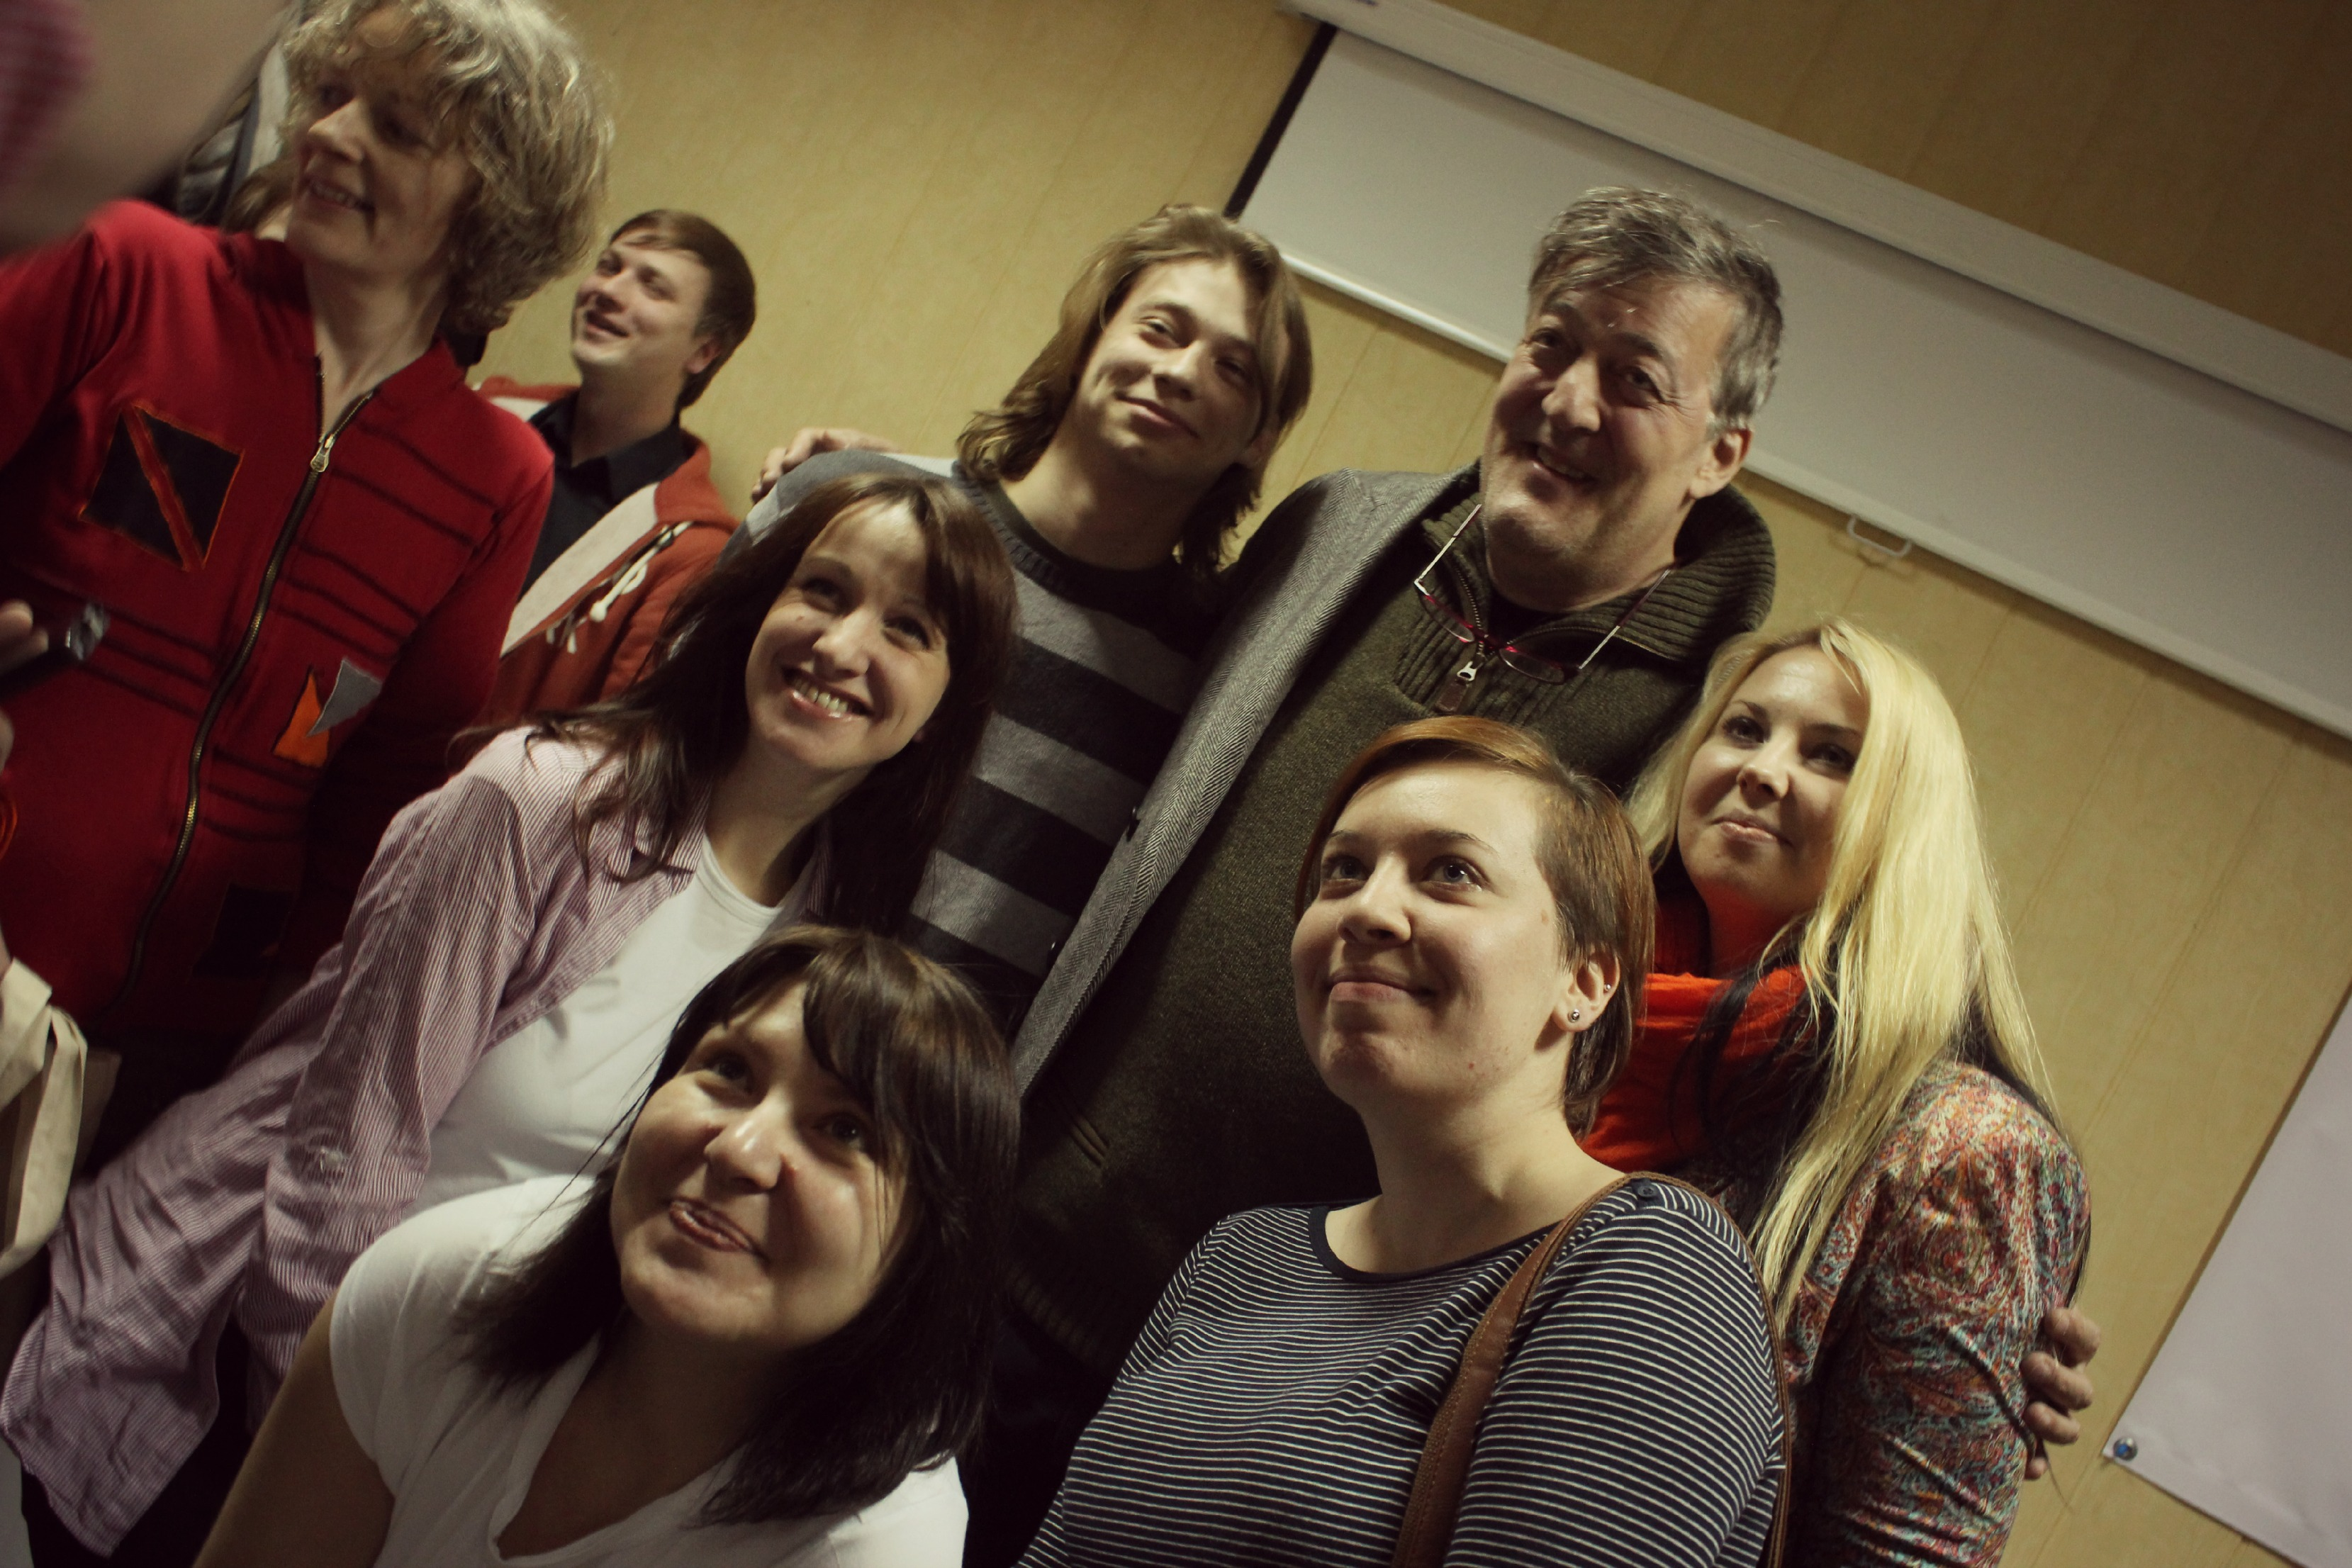 Stephen Fry poses with LGBT activists in St. Petersburg, Russia. (Photo courtesy of  ComingOutSPB.ru)